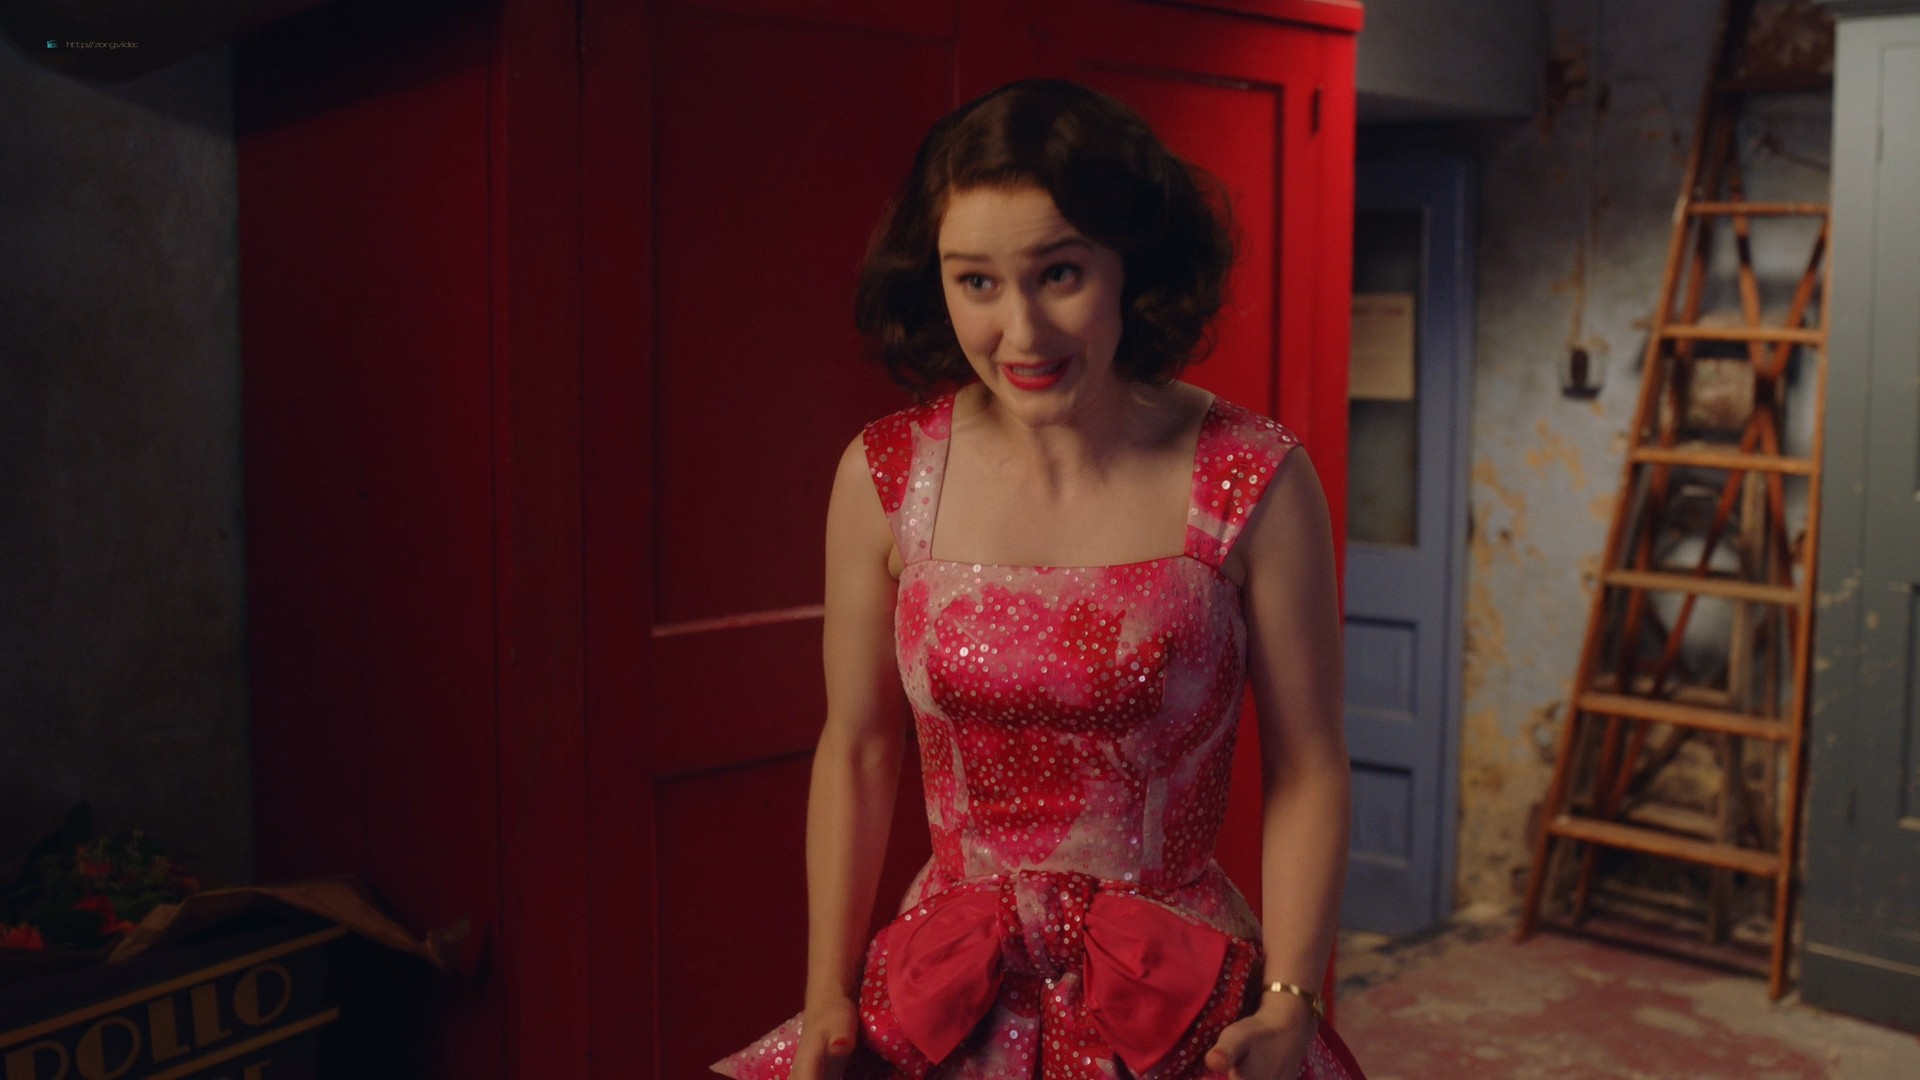 Rachel Brosnahan hot and sexy - The Marvelous Mrs. Maisel (2019) S3 HD 1080p (3)